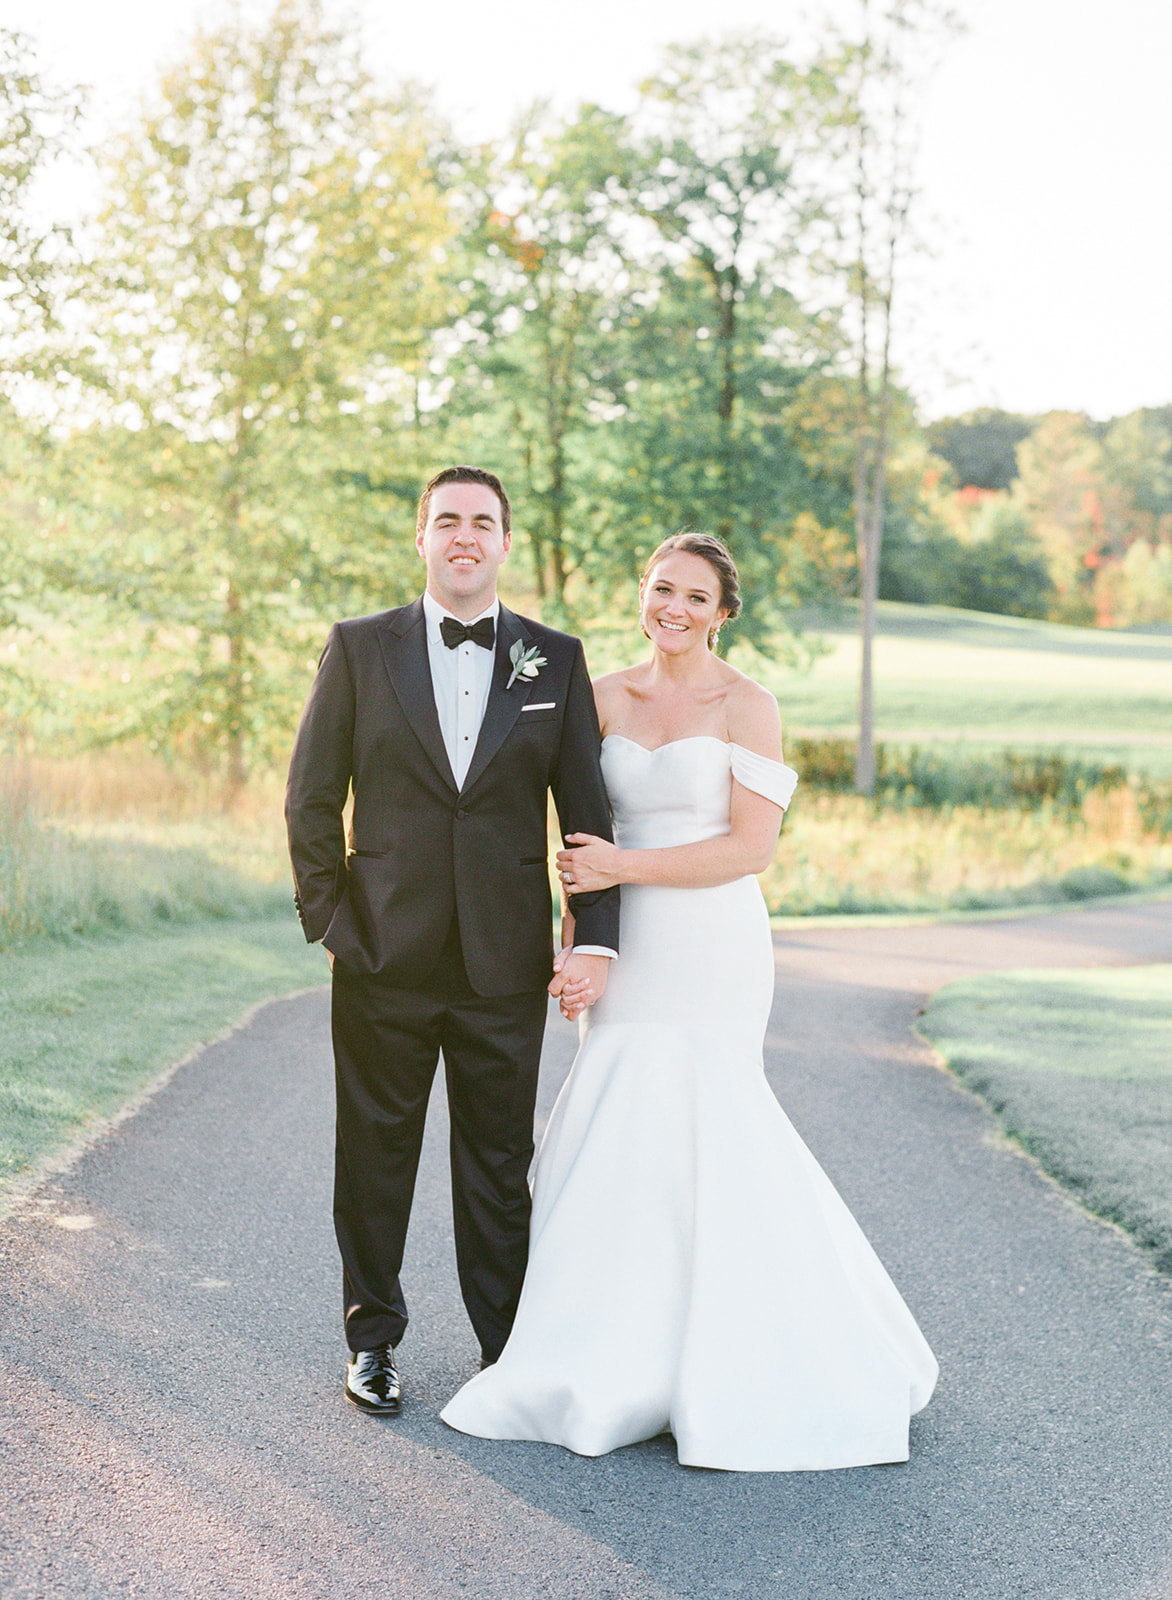 Meg+Greg_Wedding-689